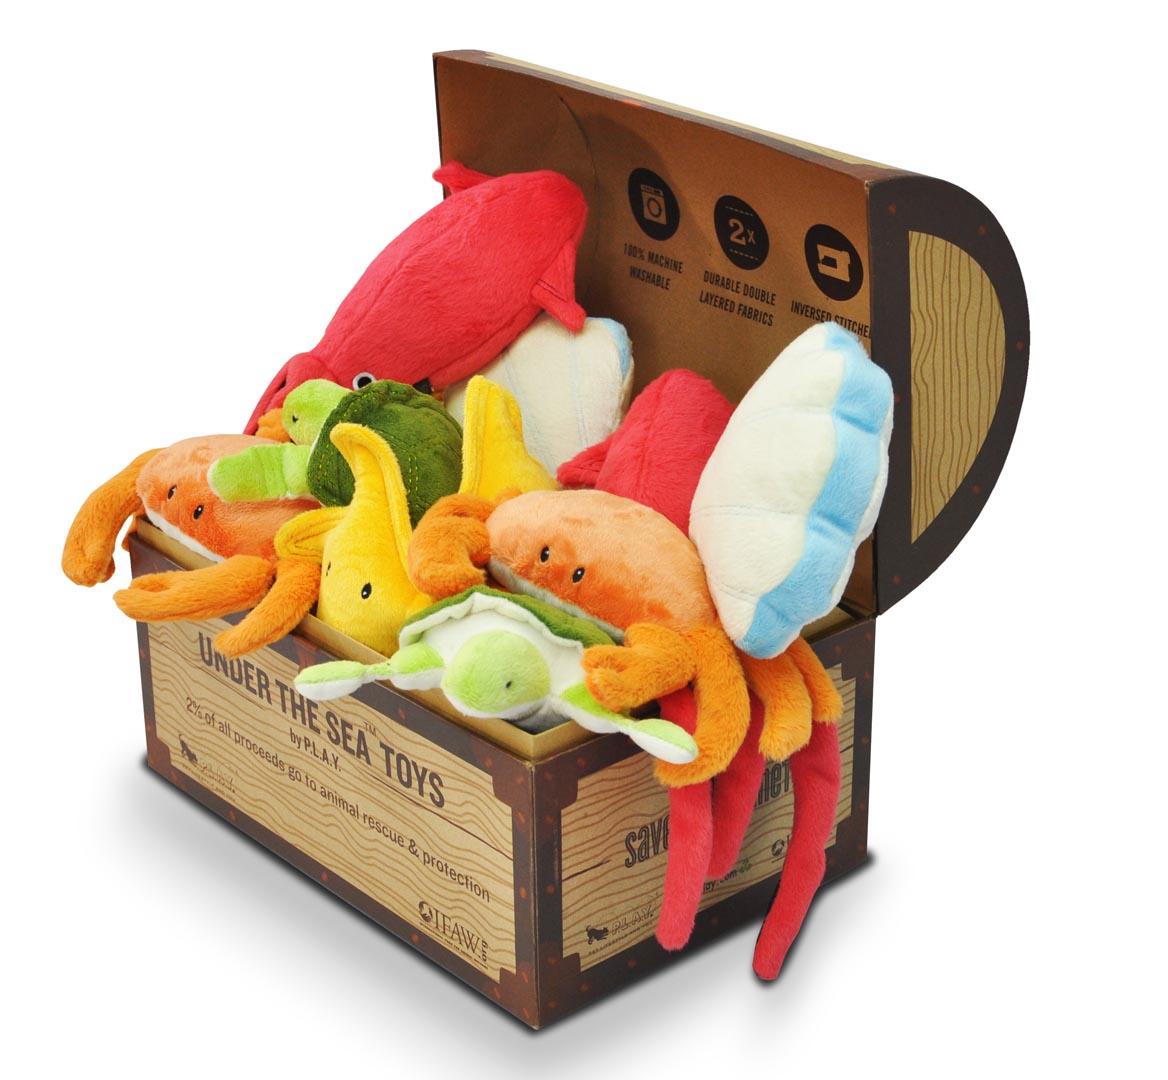 underthesea pet toys